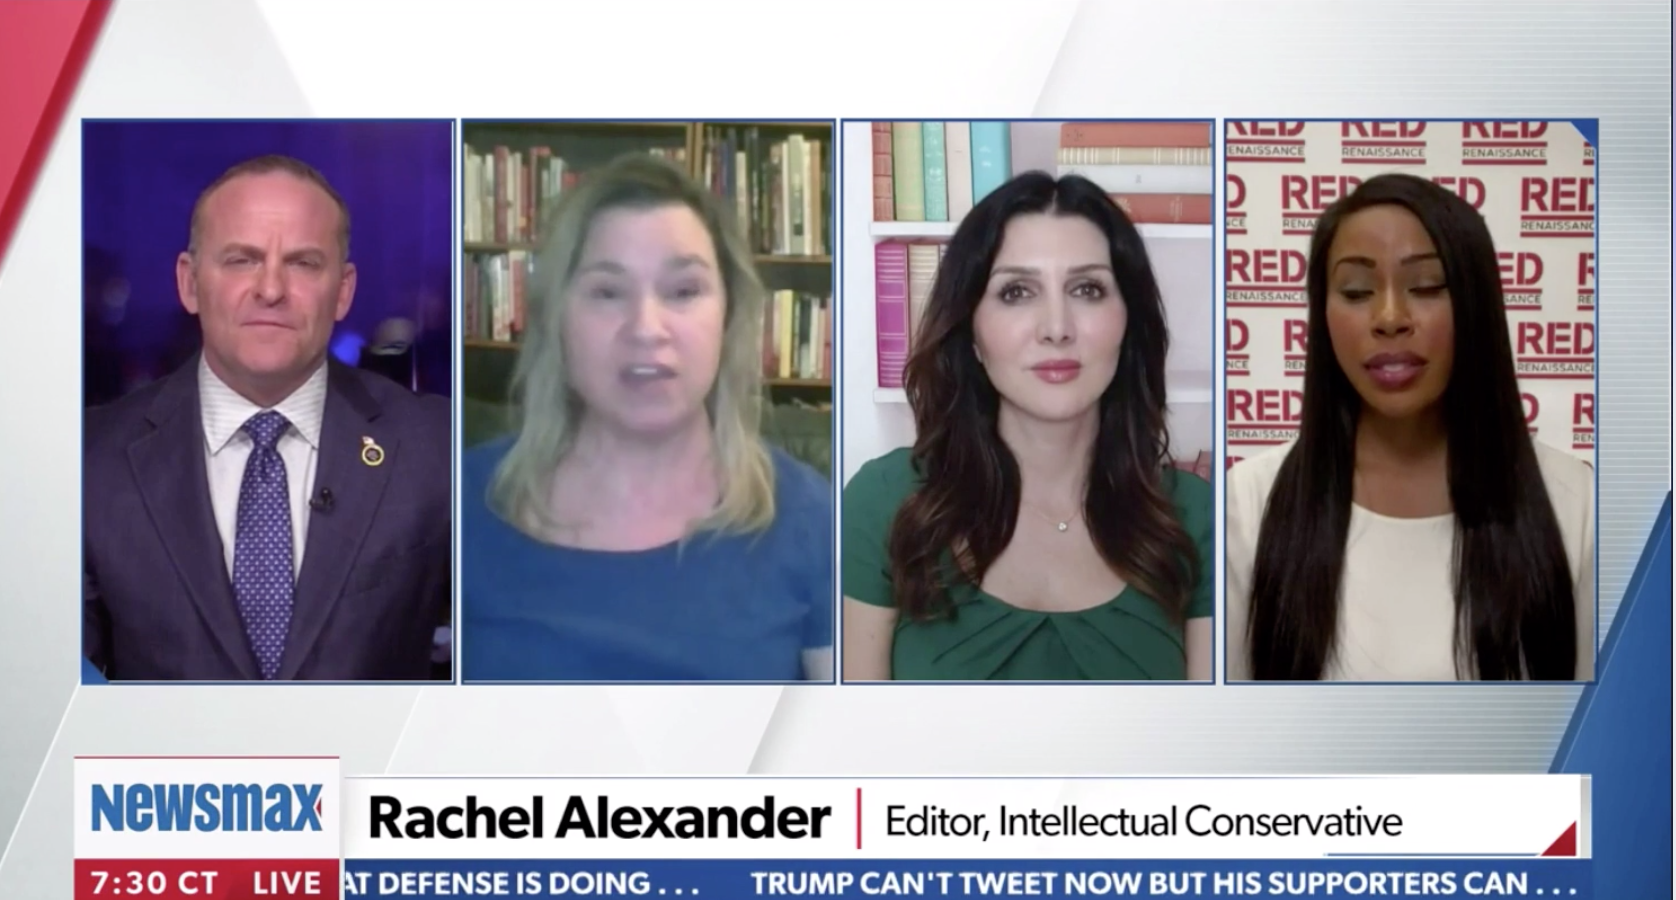 IC Editor Rachel Alexander on Newsmax talking about how the right needs to start thinking in terms of chess moves